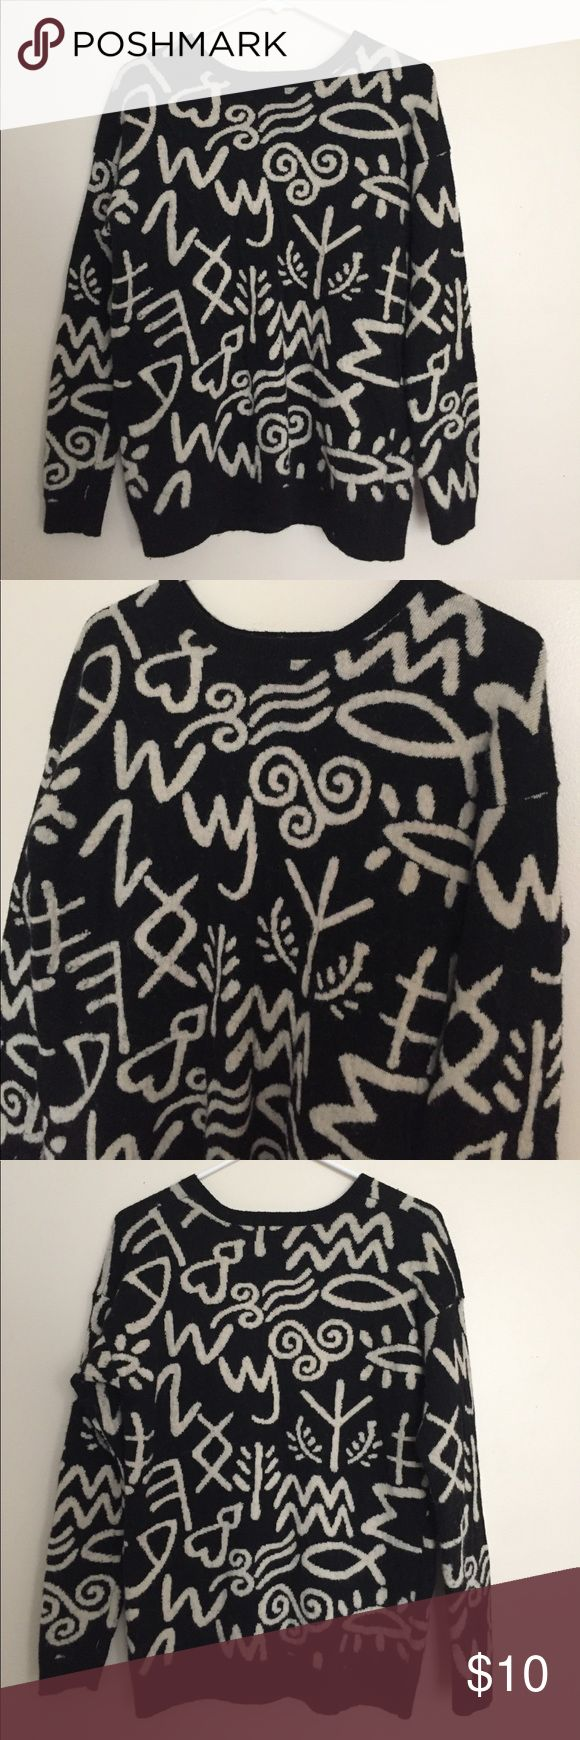 Thick black sweater Cozy thick black sweater with off-white designs. Has little fuzzys coming off the sweater which was bought this way. Only worn once- good condition. Looks great with black leggings and boots! Forever 21 Sweaters